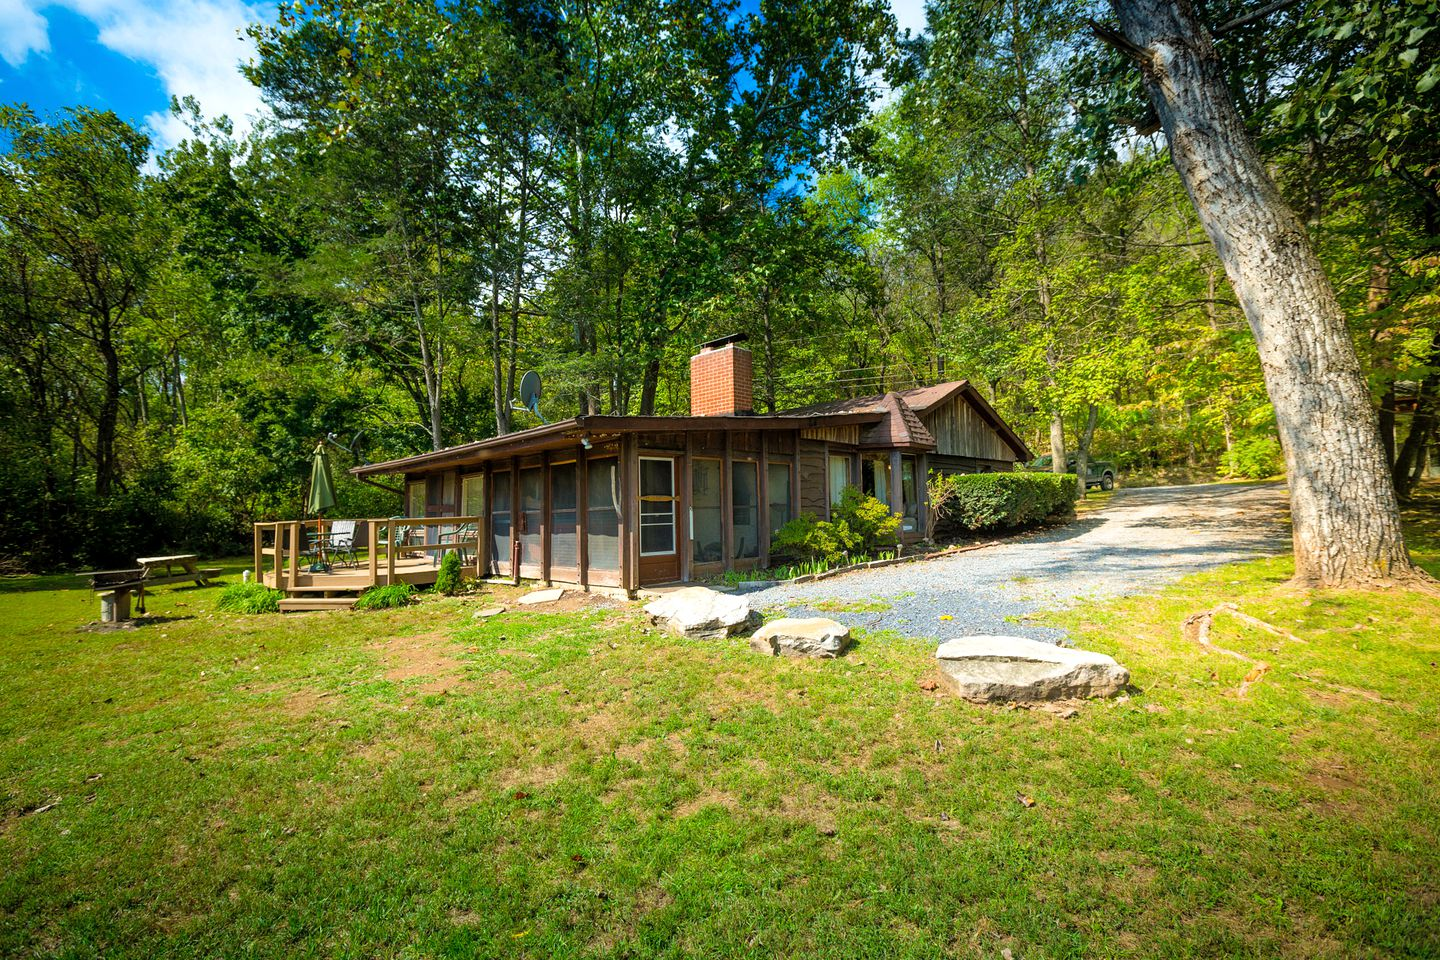 Cabins (Luray, Virginia, United States)